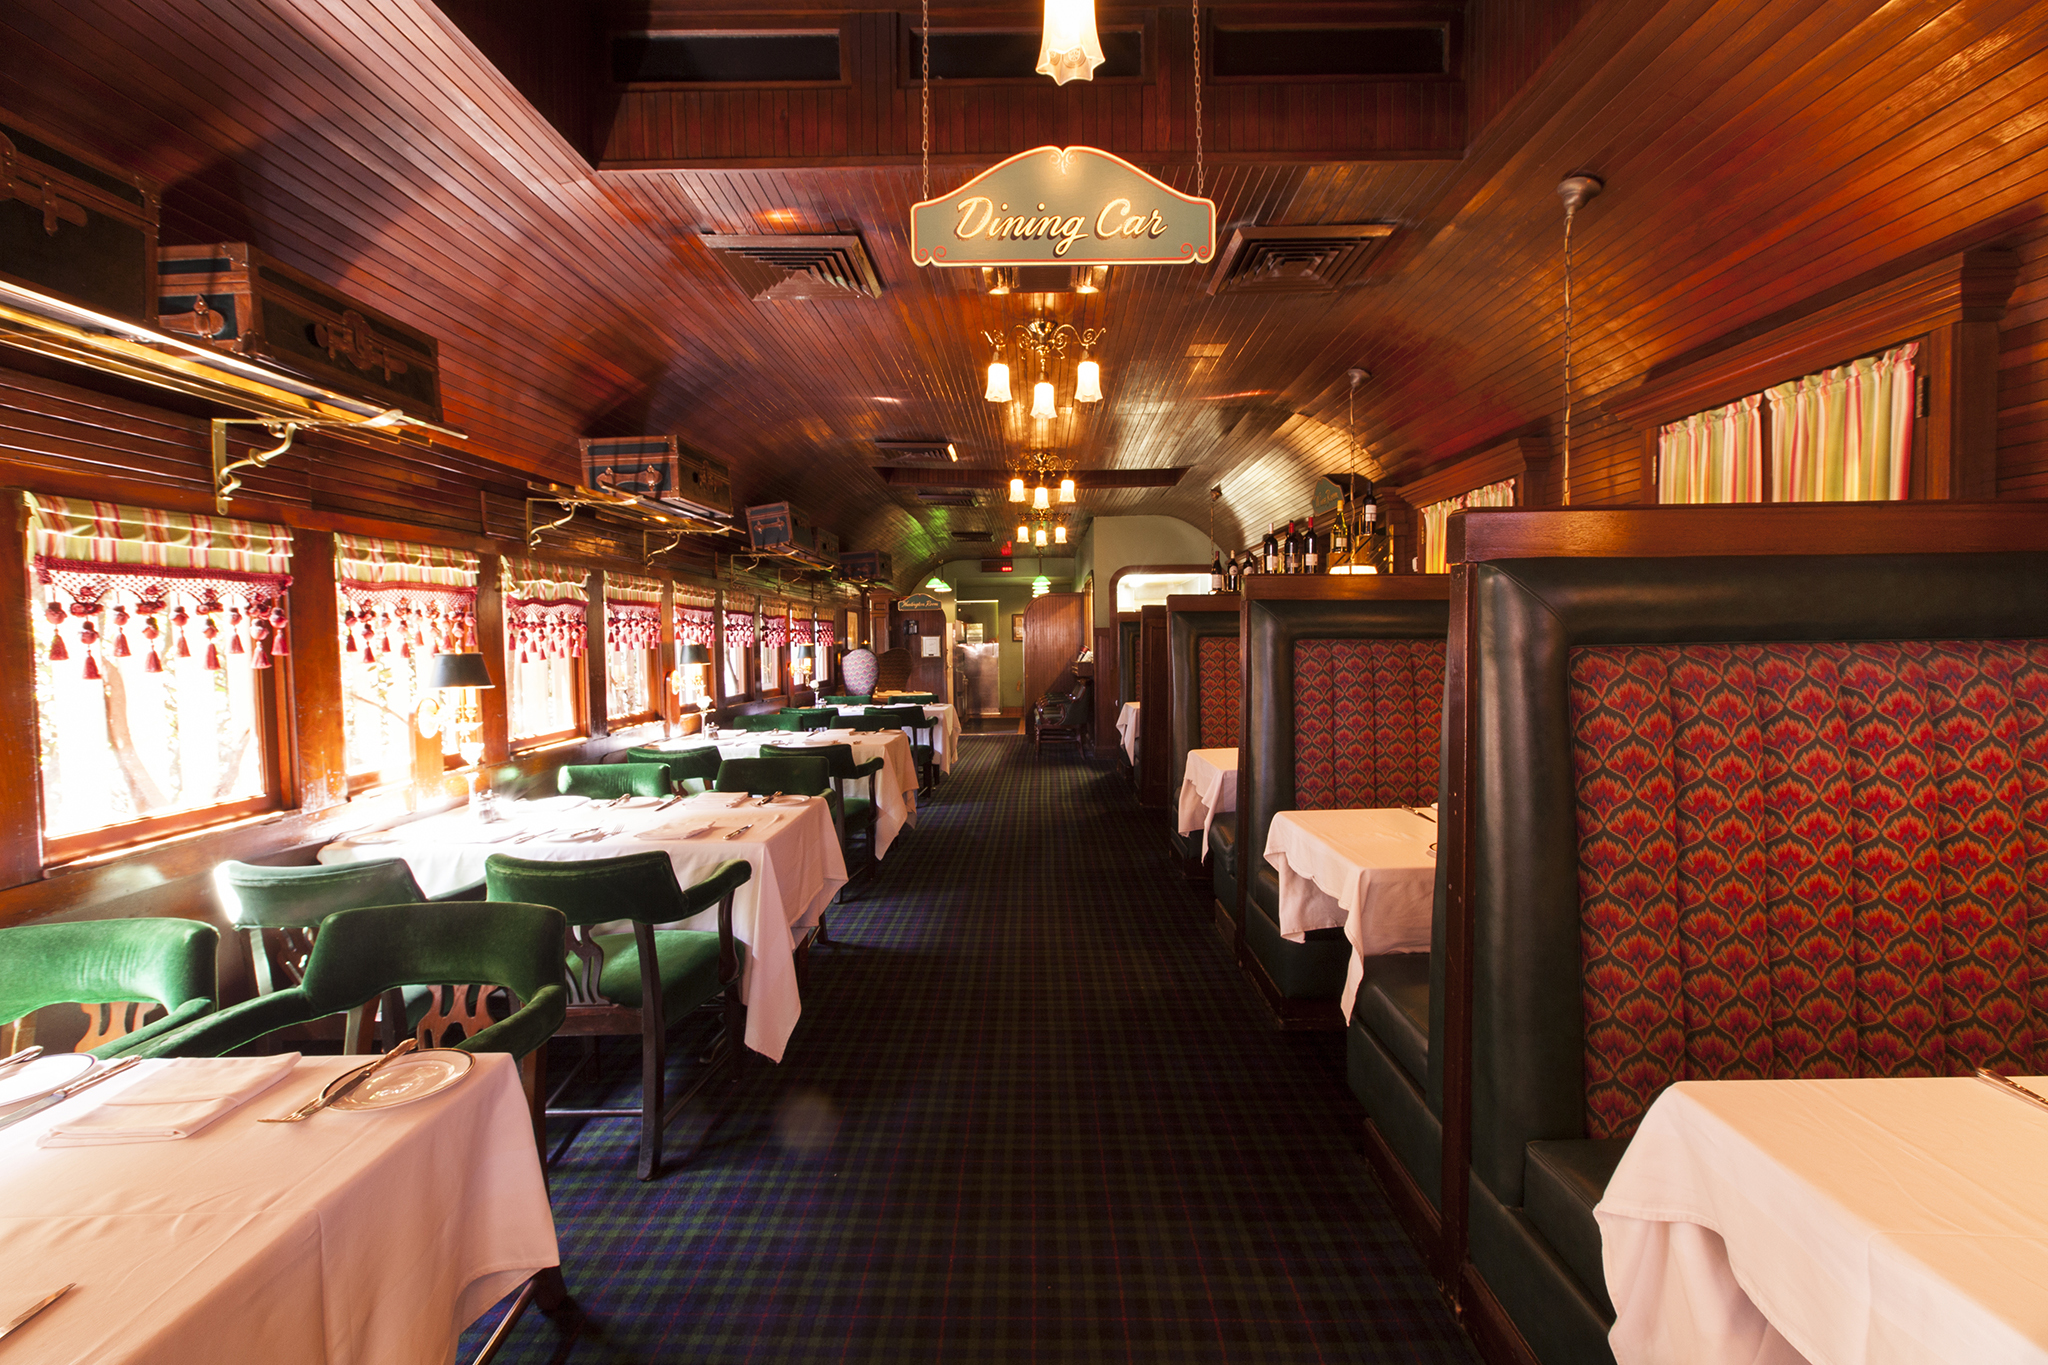 Classy couple: Pacific Dining Car